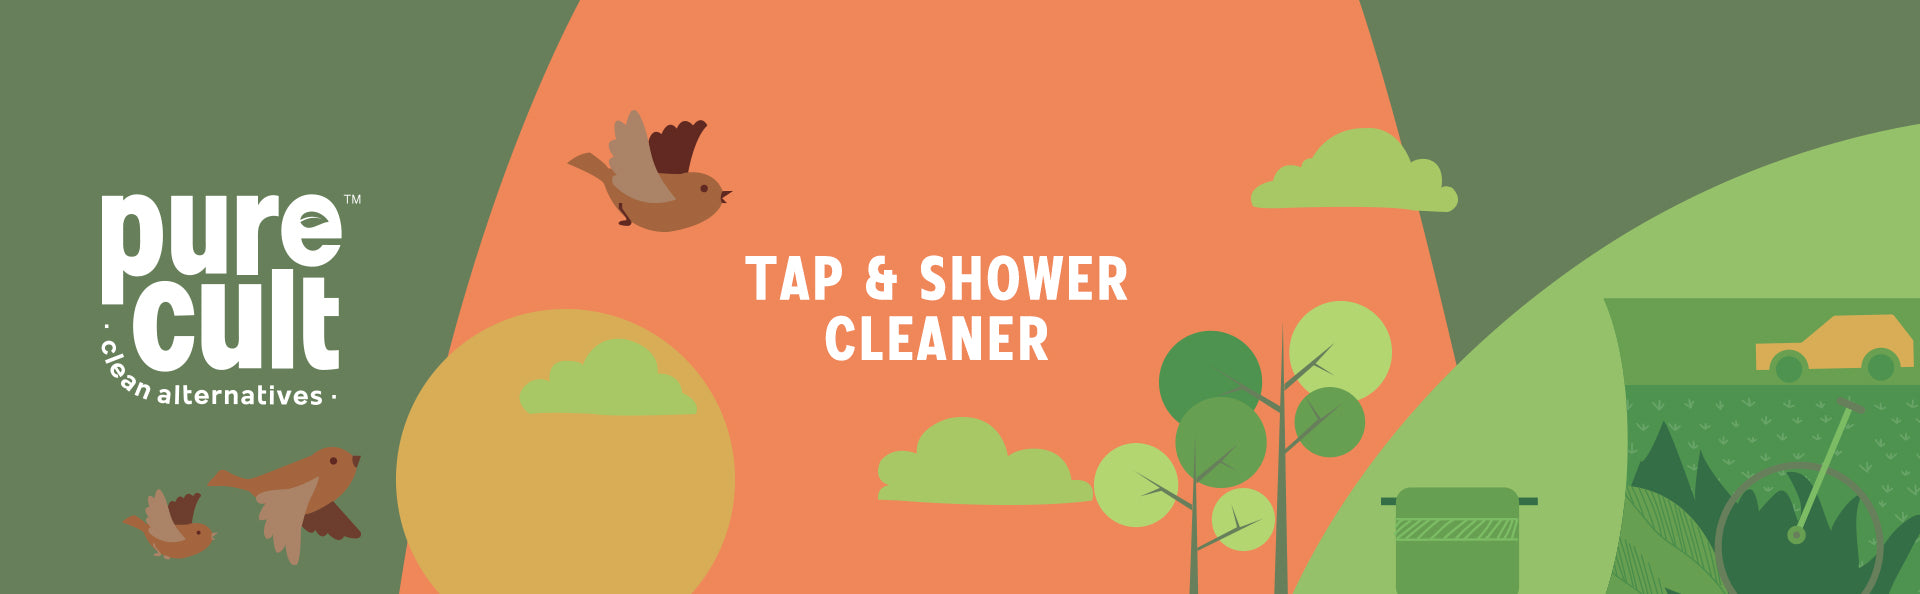 Pure Cult Tap And Shower Cleaner